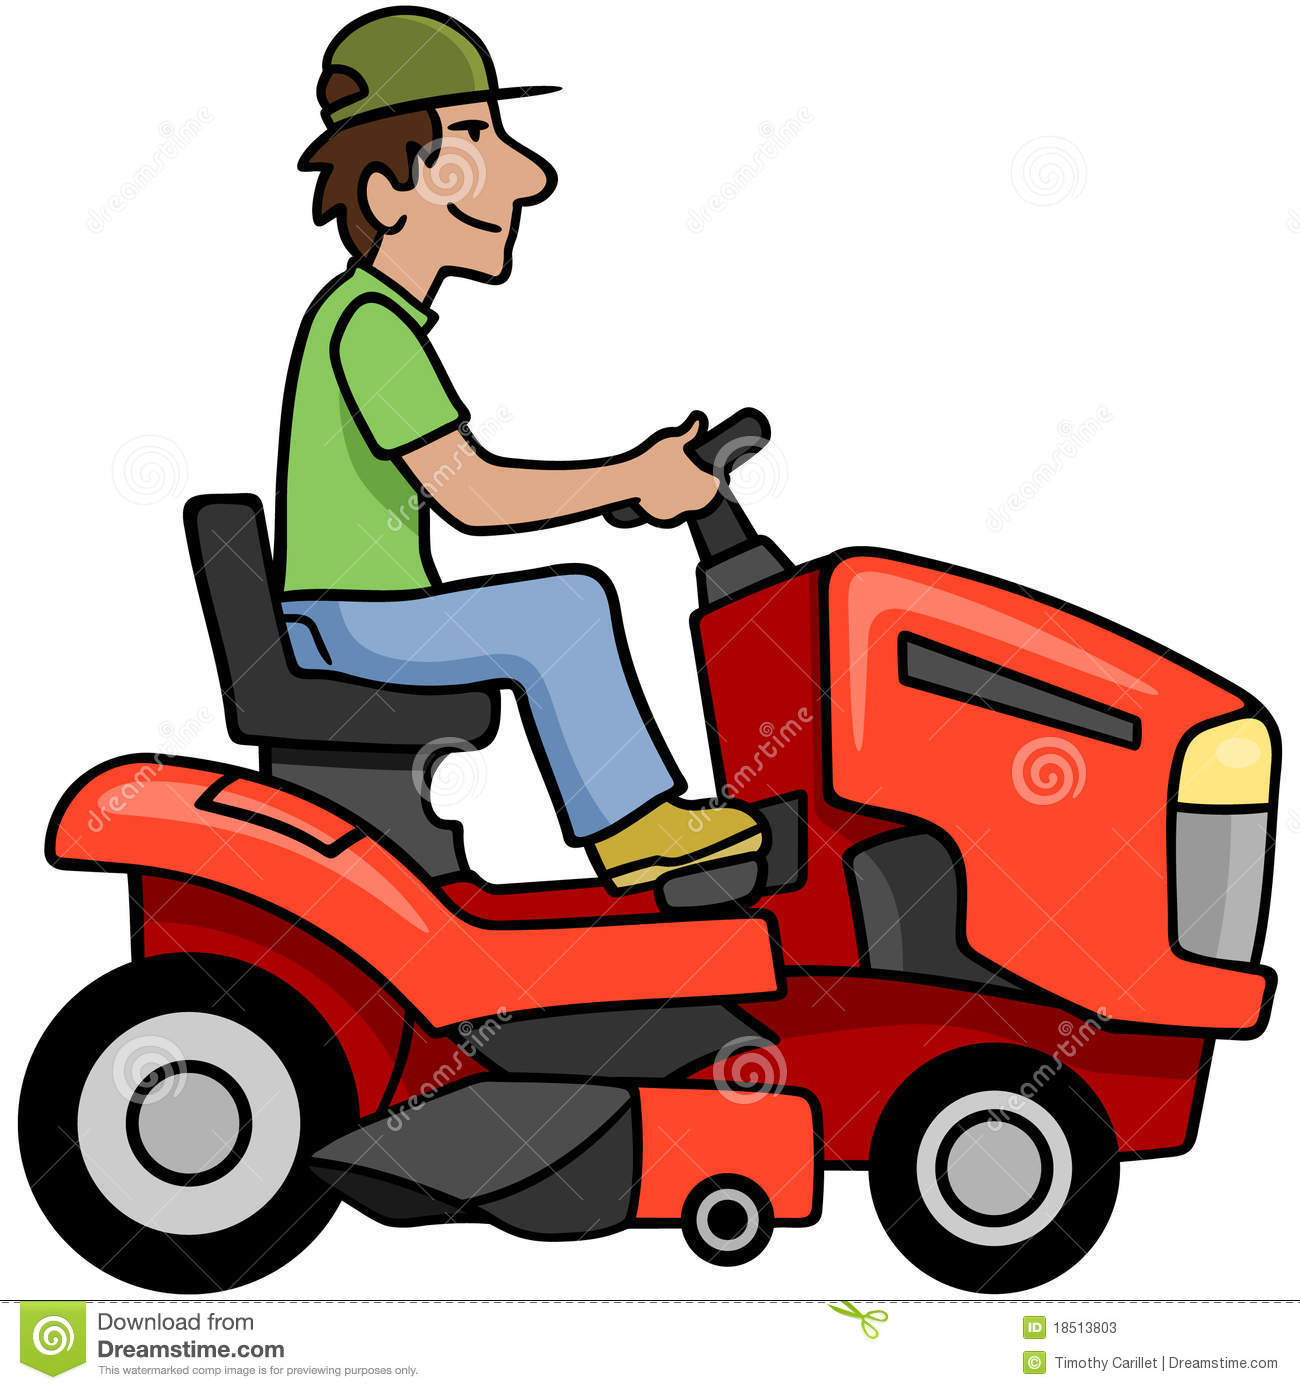 Cartoon lawn mower clipart 6 » Clipart Station.